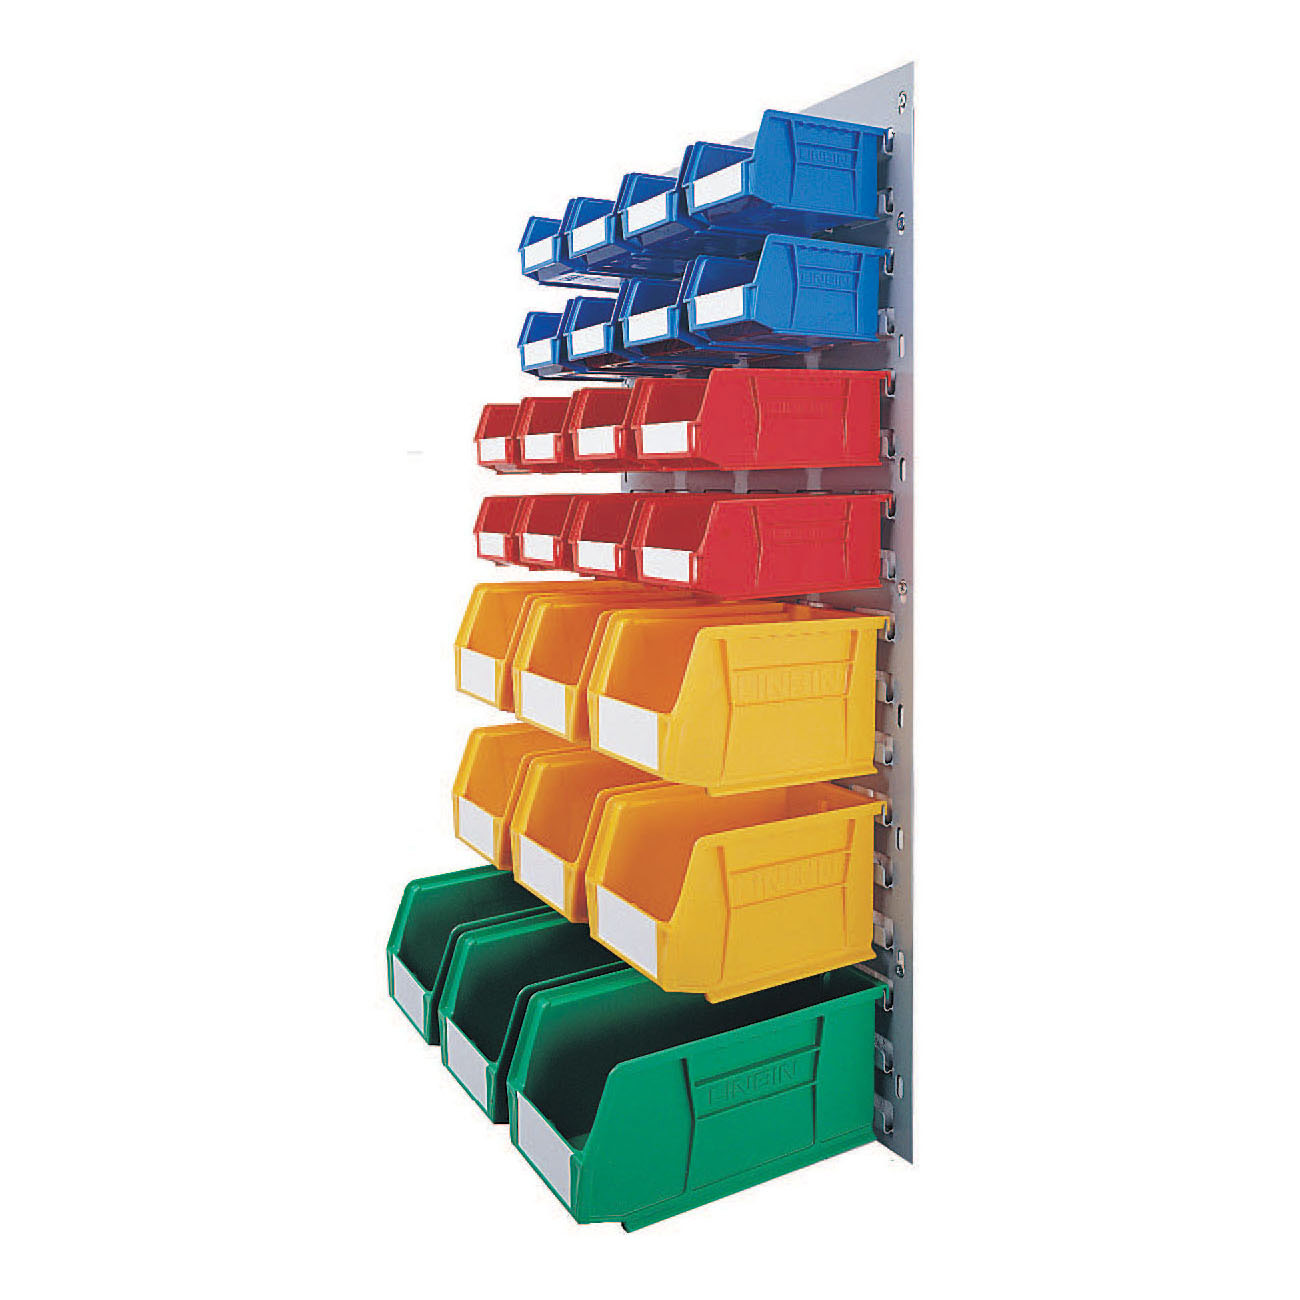 Storelab storage bins multi-coloured